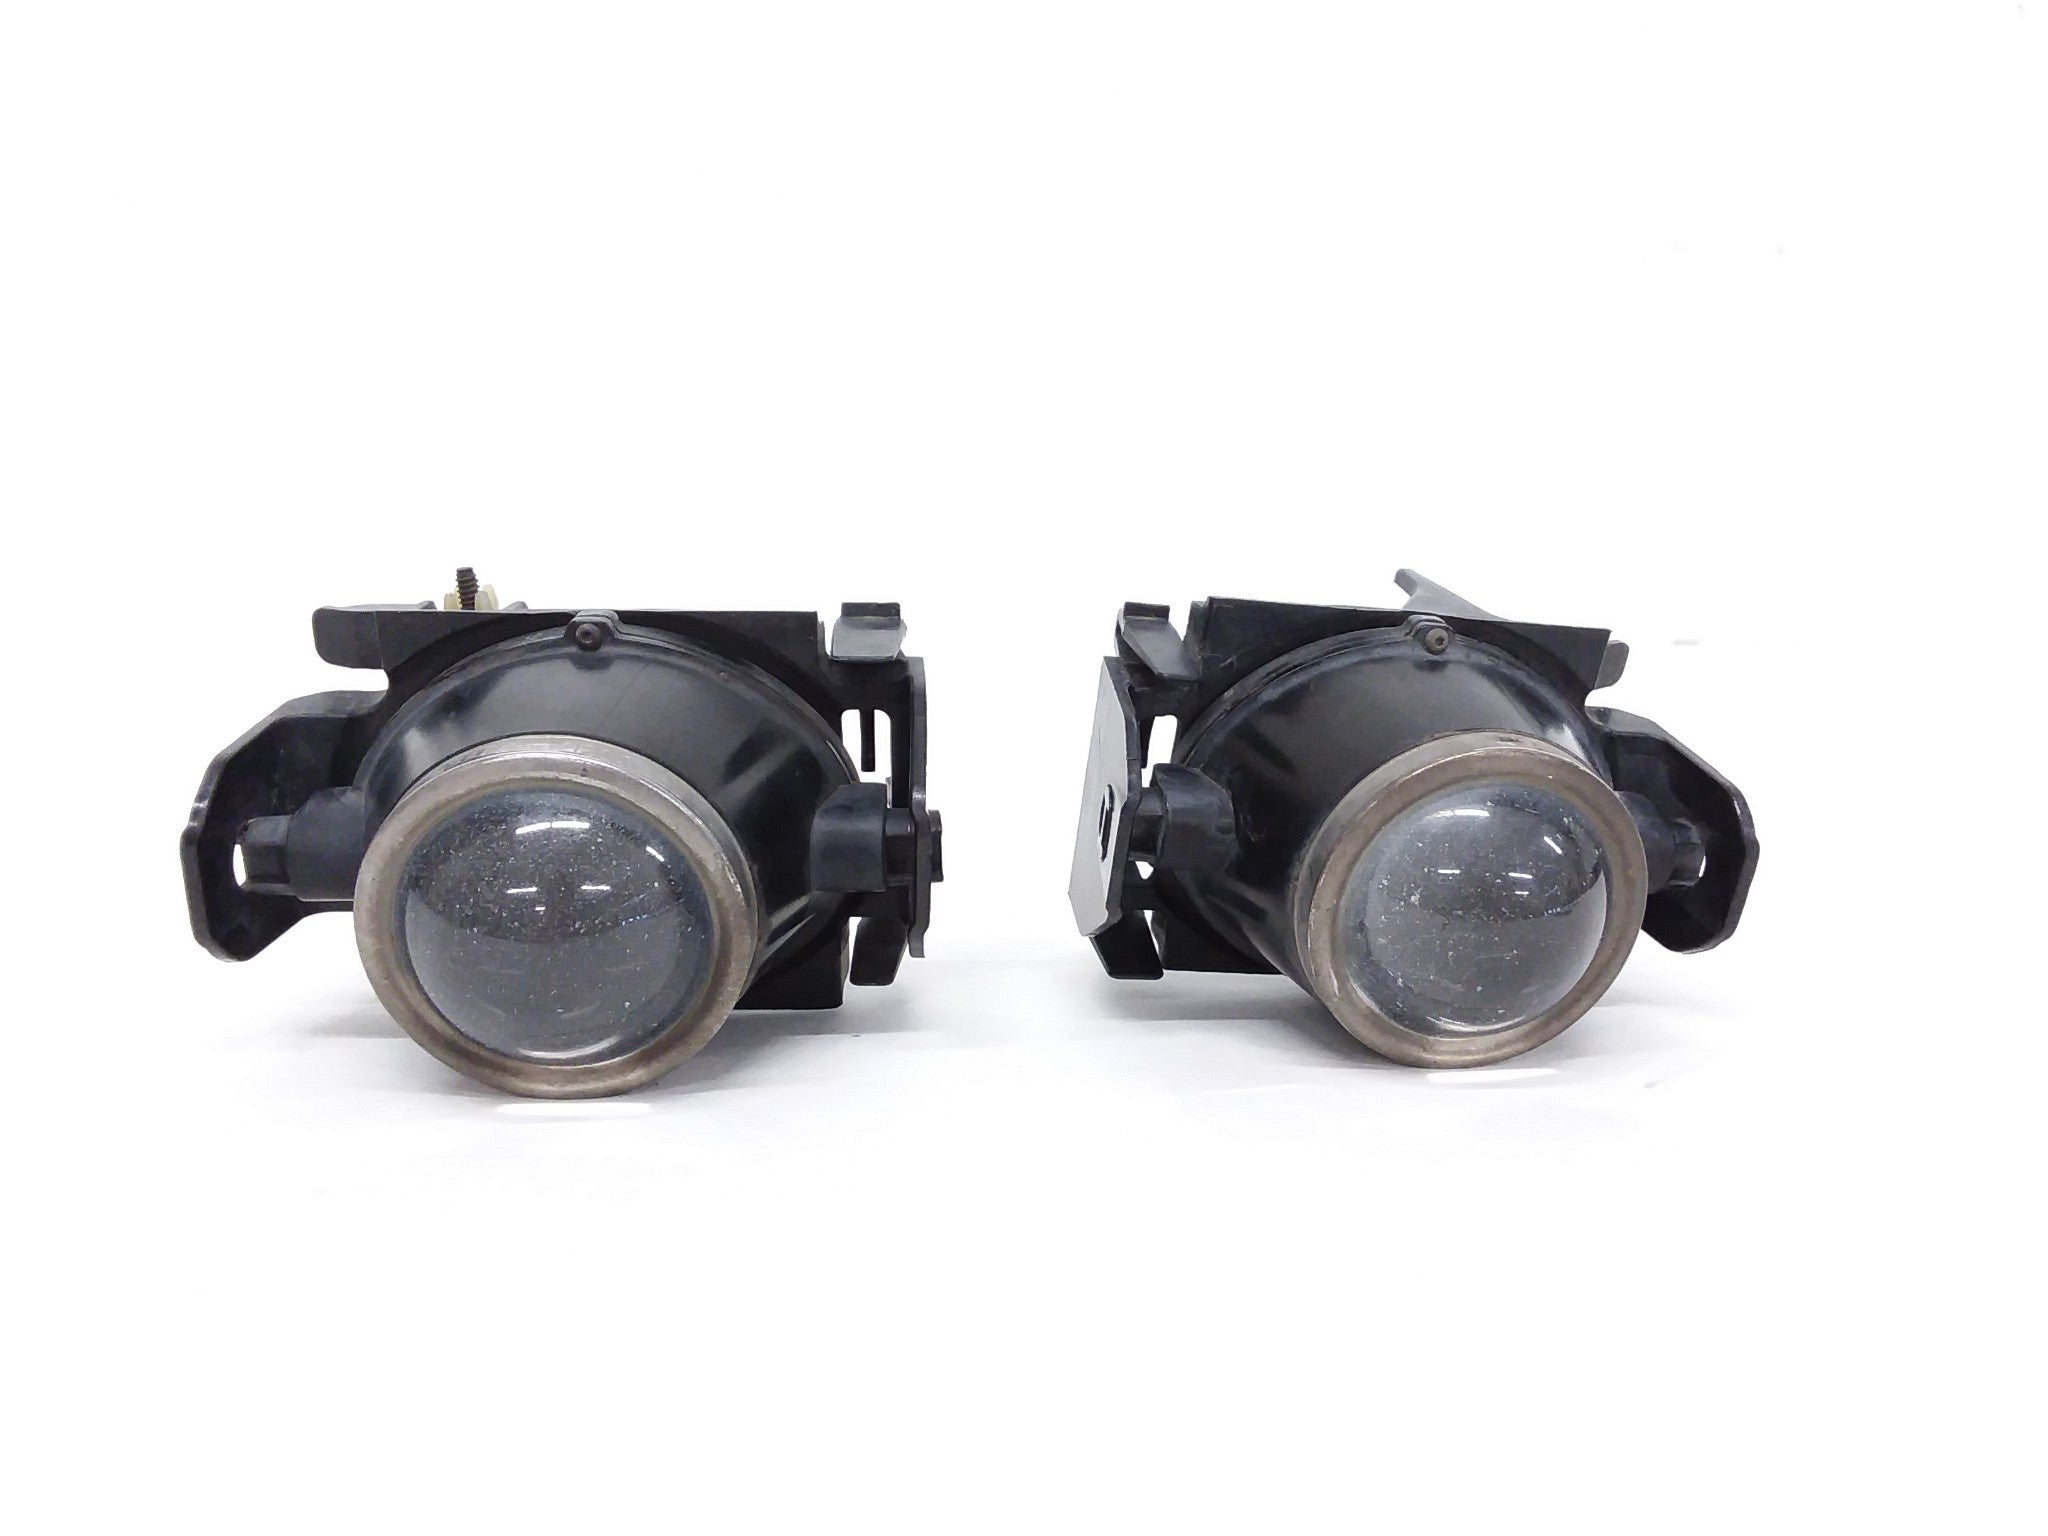 2010 2011 2012 Ford Fusion Fog Light Driver and Passenger 6E53-15K200-AA SET OEM - Click Receive Auto Parts